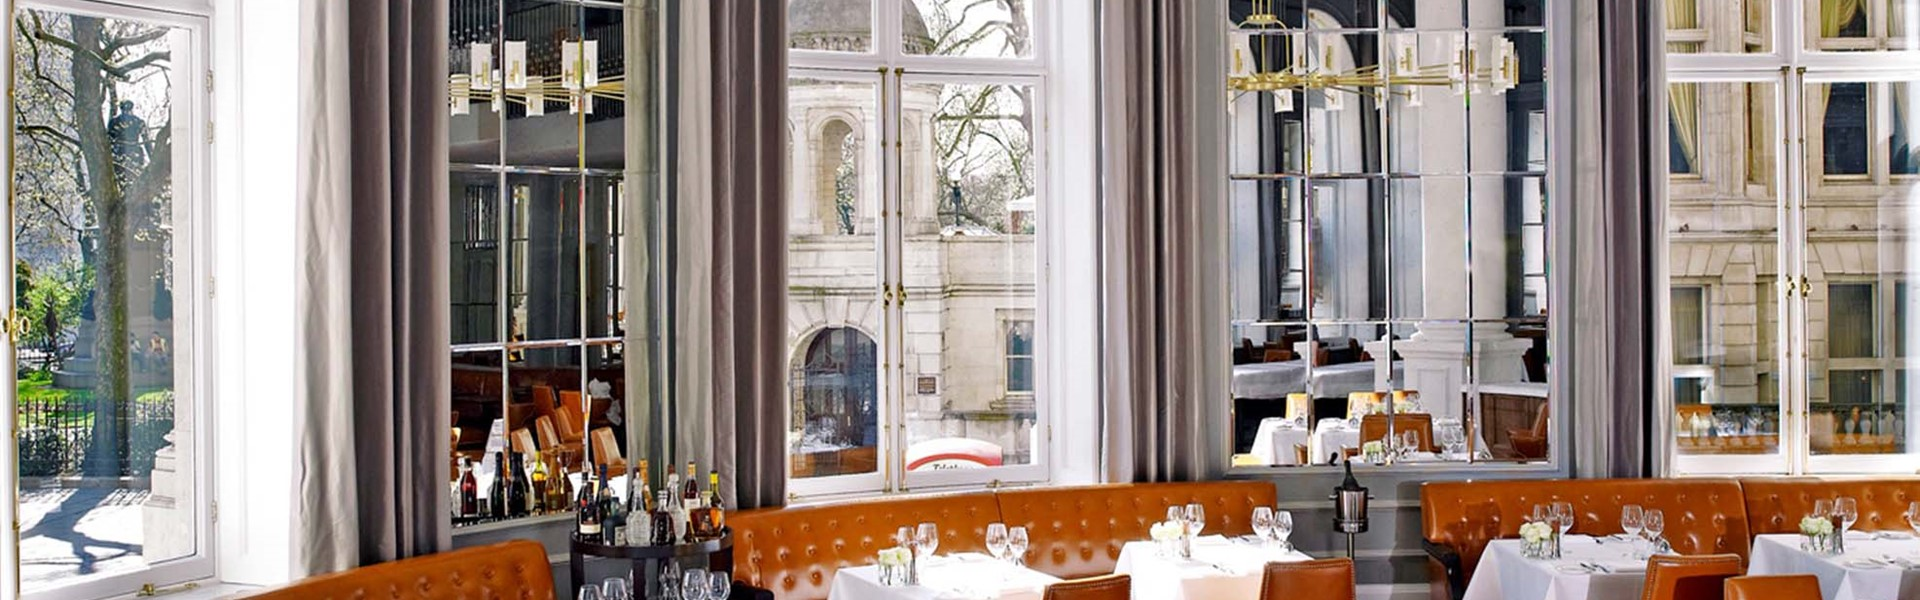 Corinthia London Northall